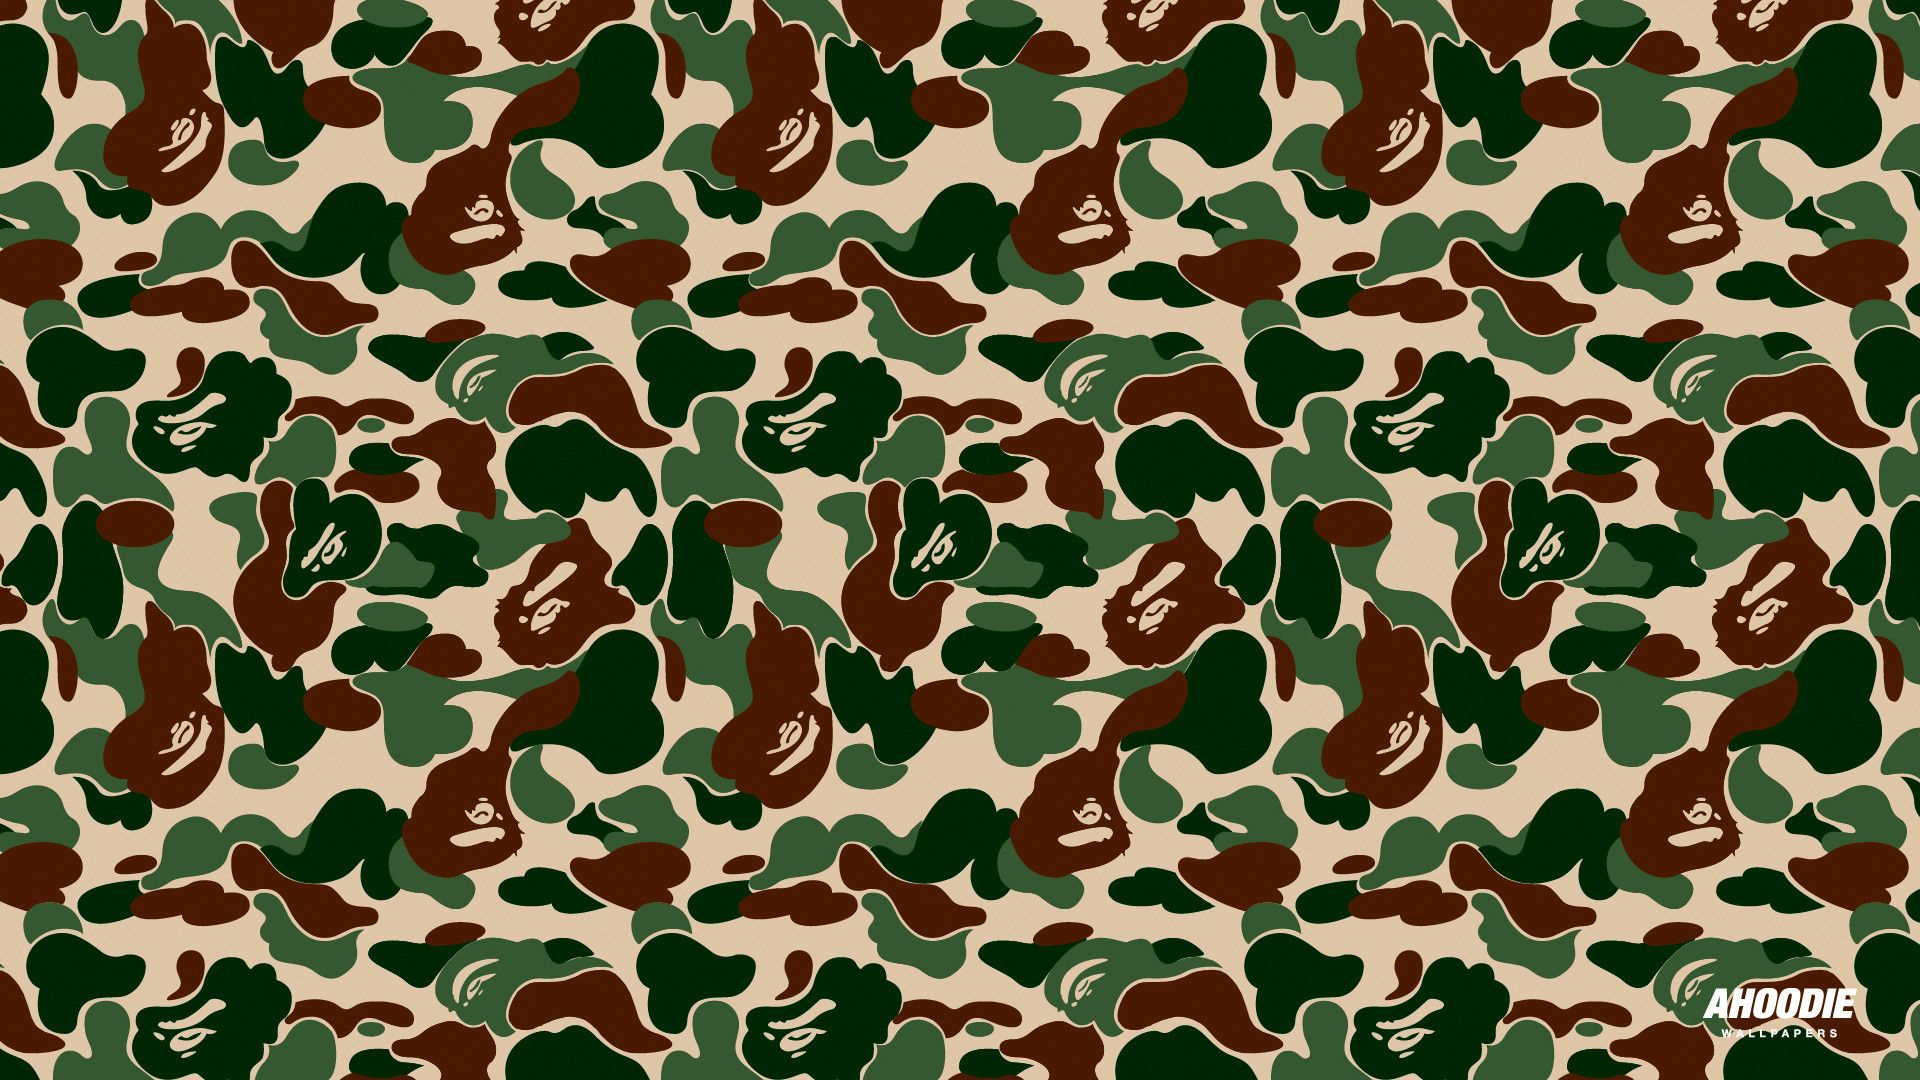 bathing ape camo wallpapers - wallpaper cave